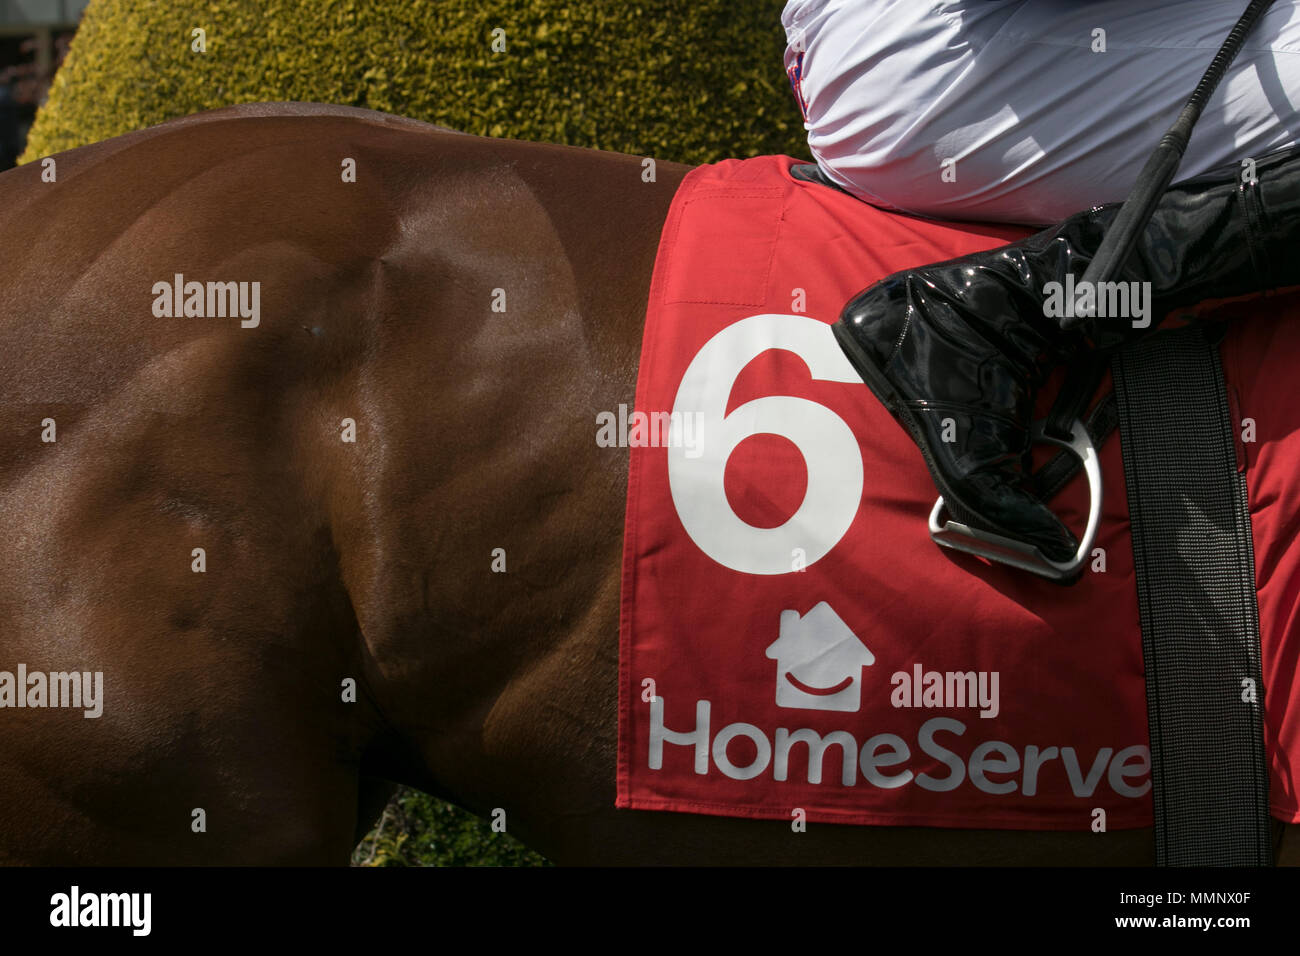 Homeserve Huxley Stakes (Group 2) War Decree ridden by R L Moore - Stock Image